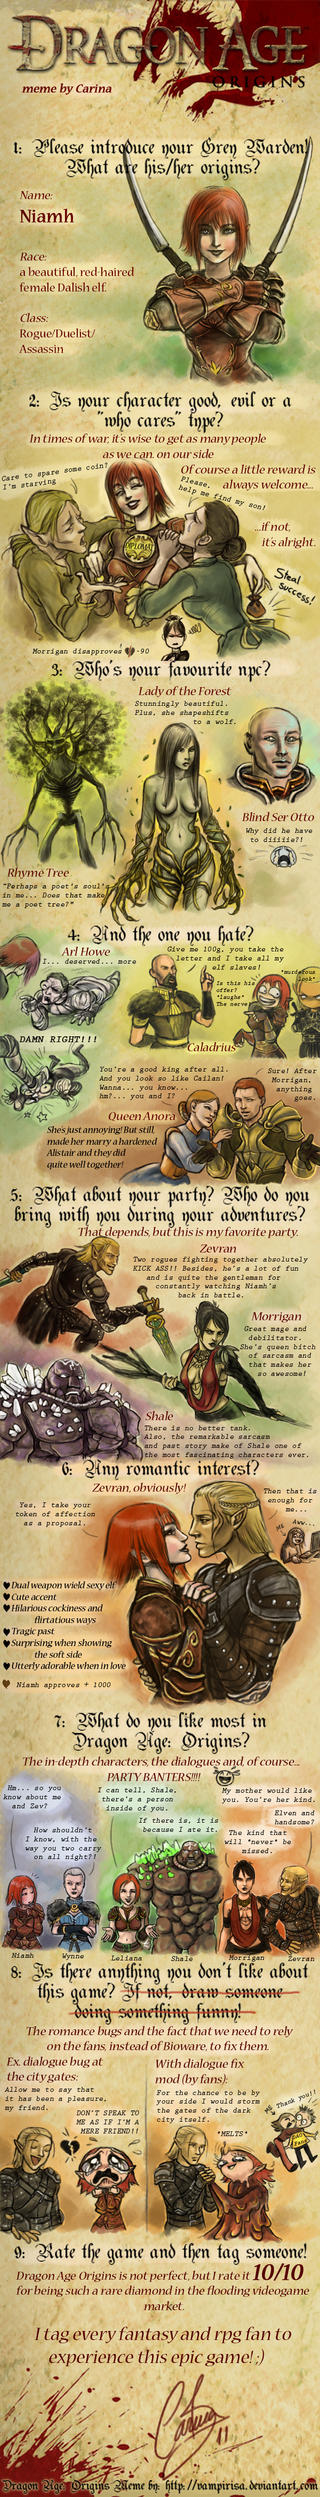 Dragon Age meme - spoilers by AniHime